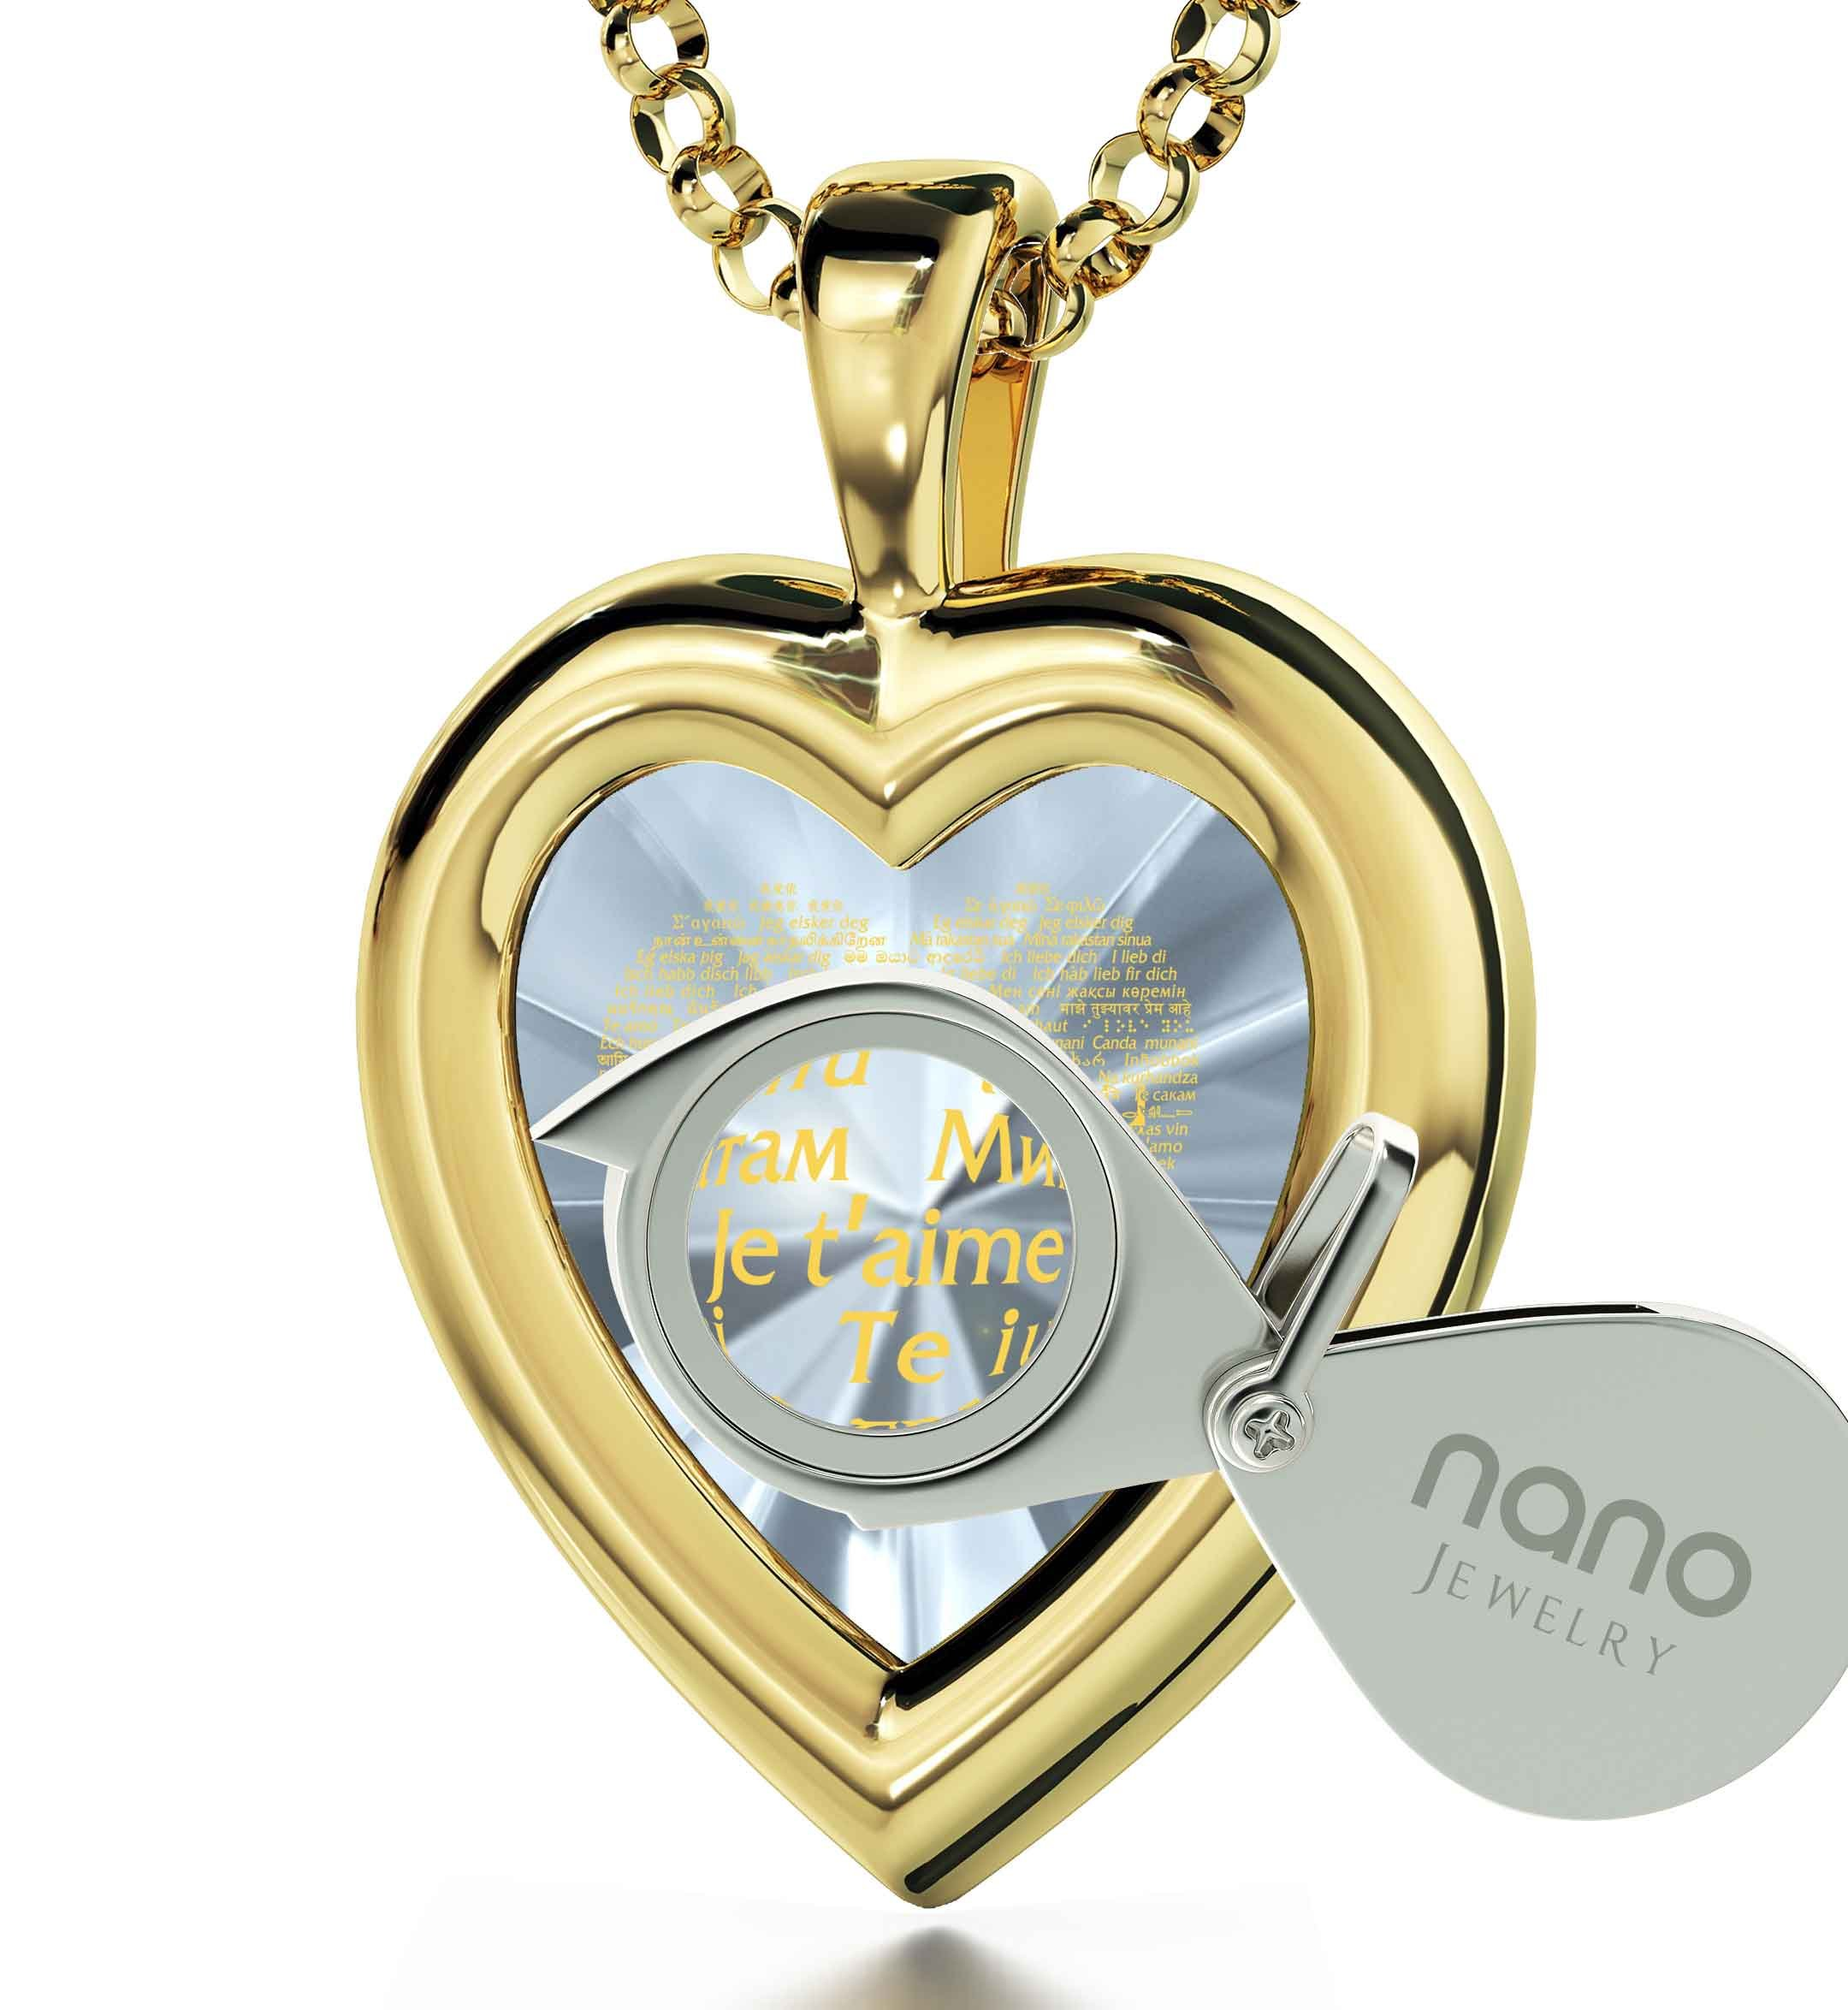 Gold Plated Heart Pendant I Love You Necklace 120 Languages 24k Gold Inscribed Clear CZ Gemstone, 18''